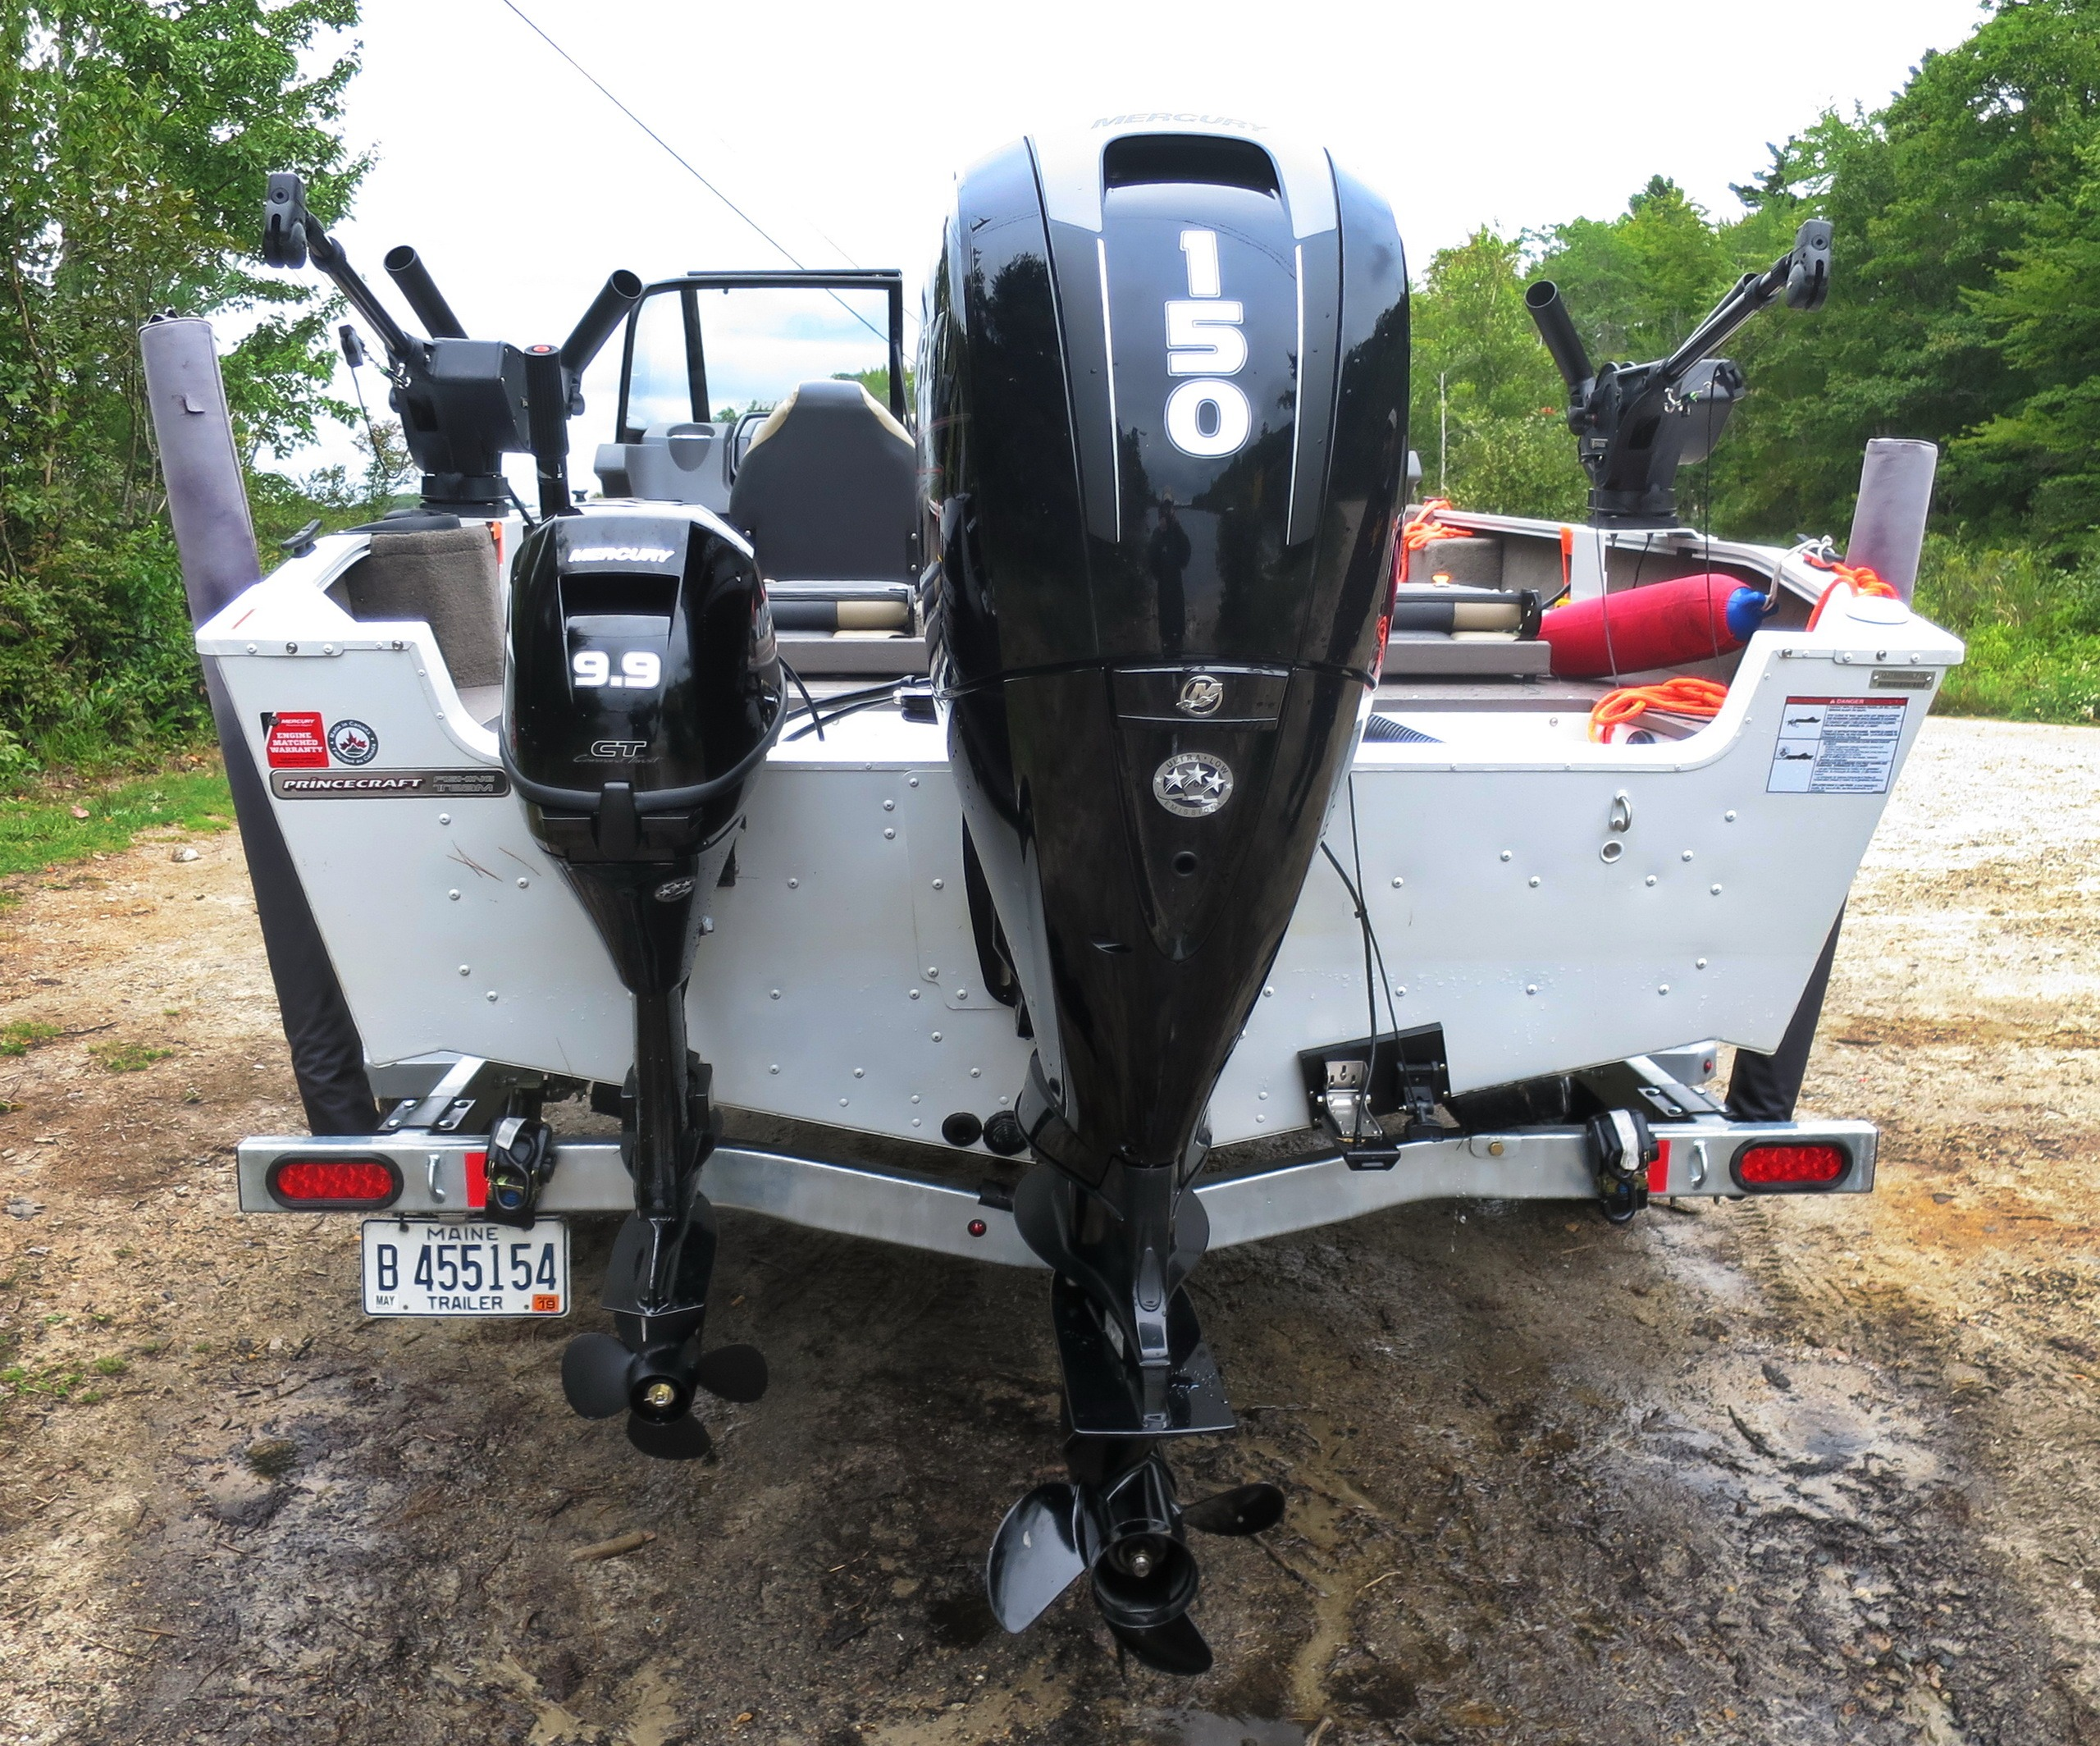 Dual outboards and transducers